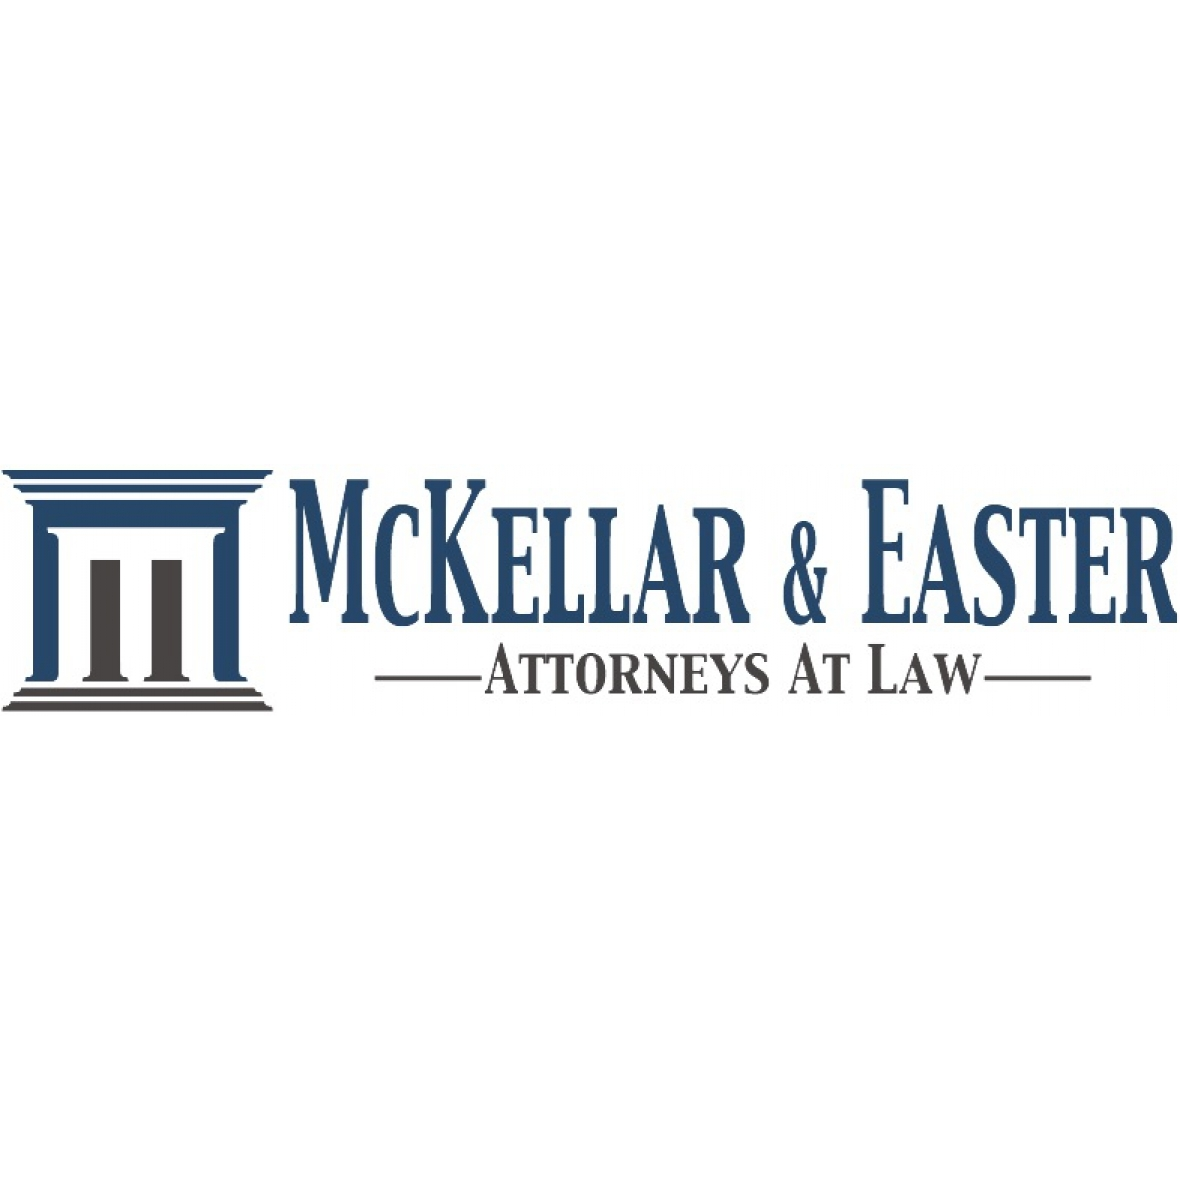 McKellar & Easter, Attorneys at Law